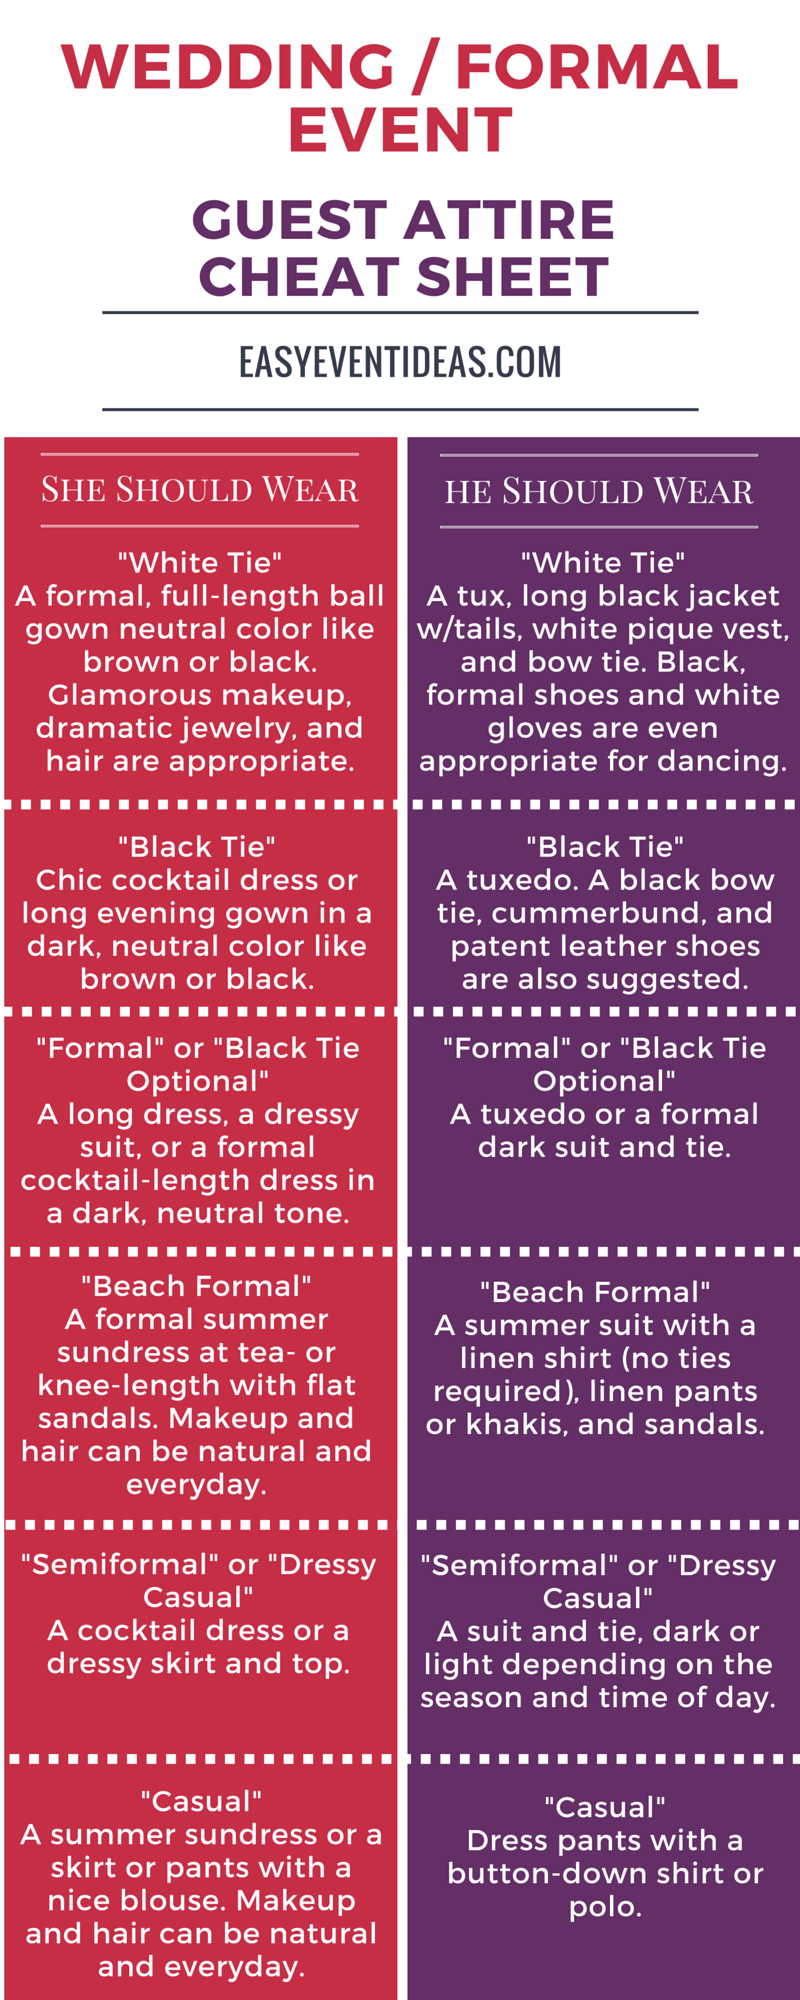 What to Wear to a Wedding or Formal Event – Easy Event Ideas